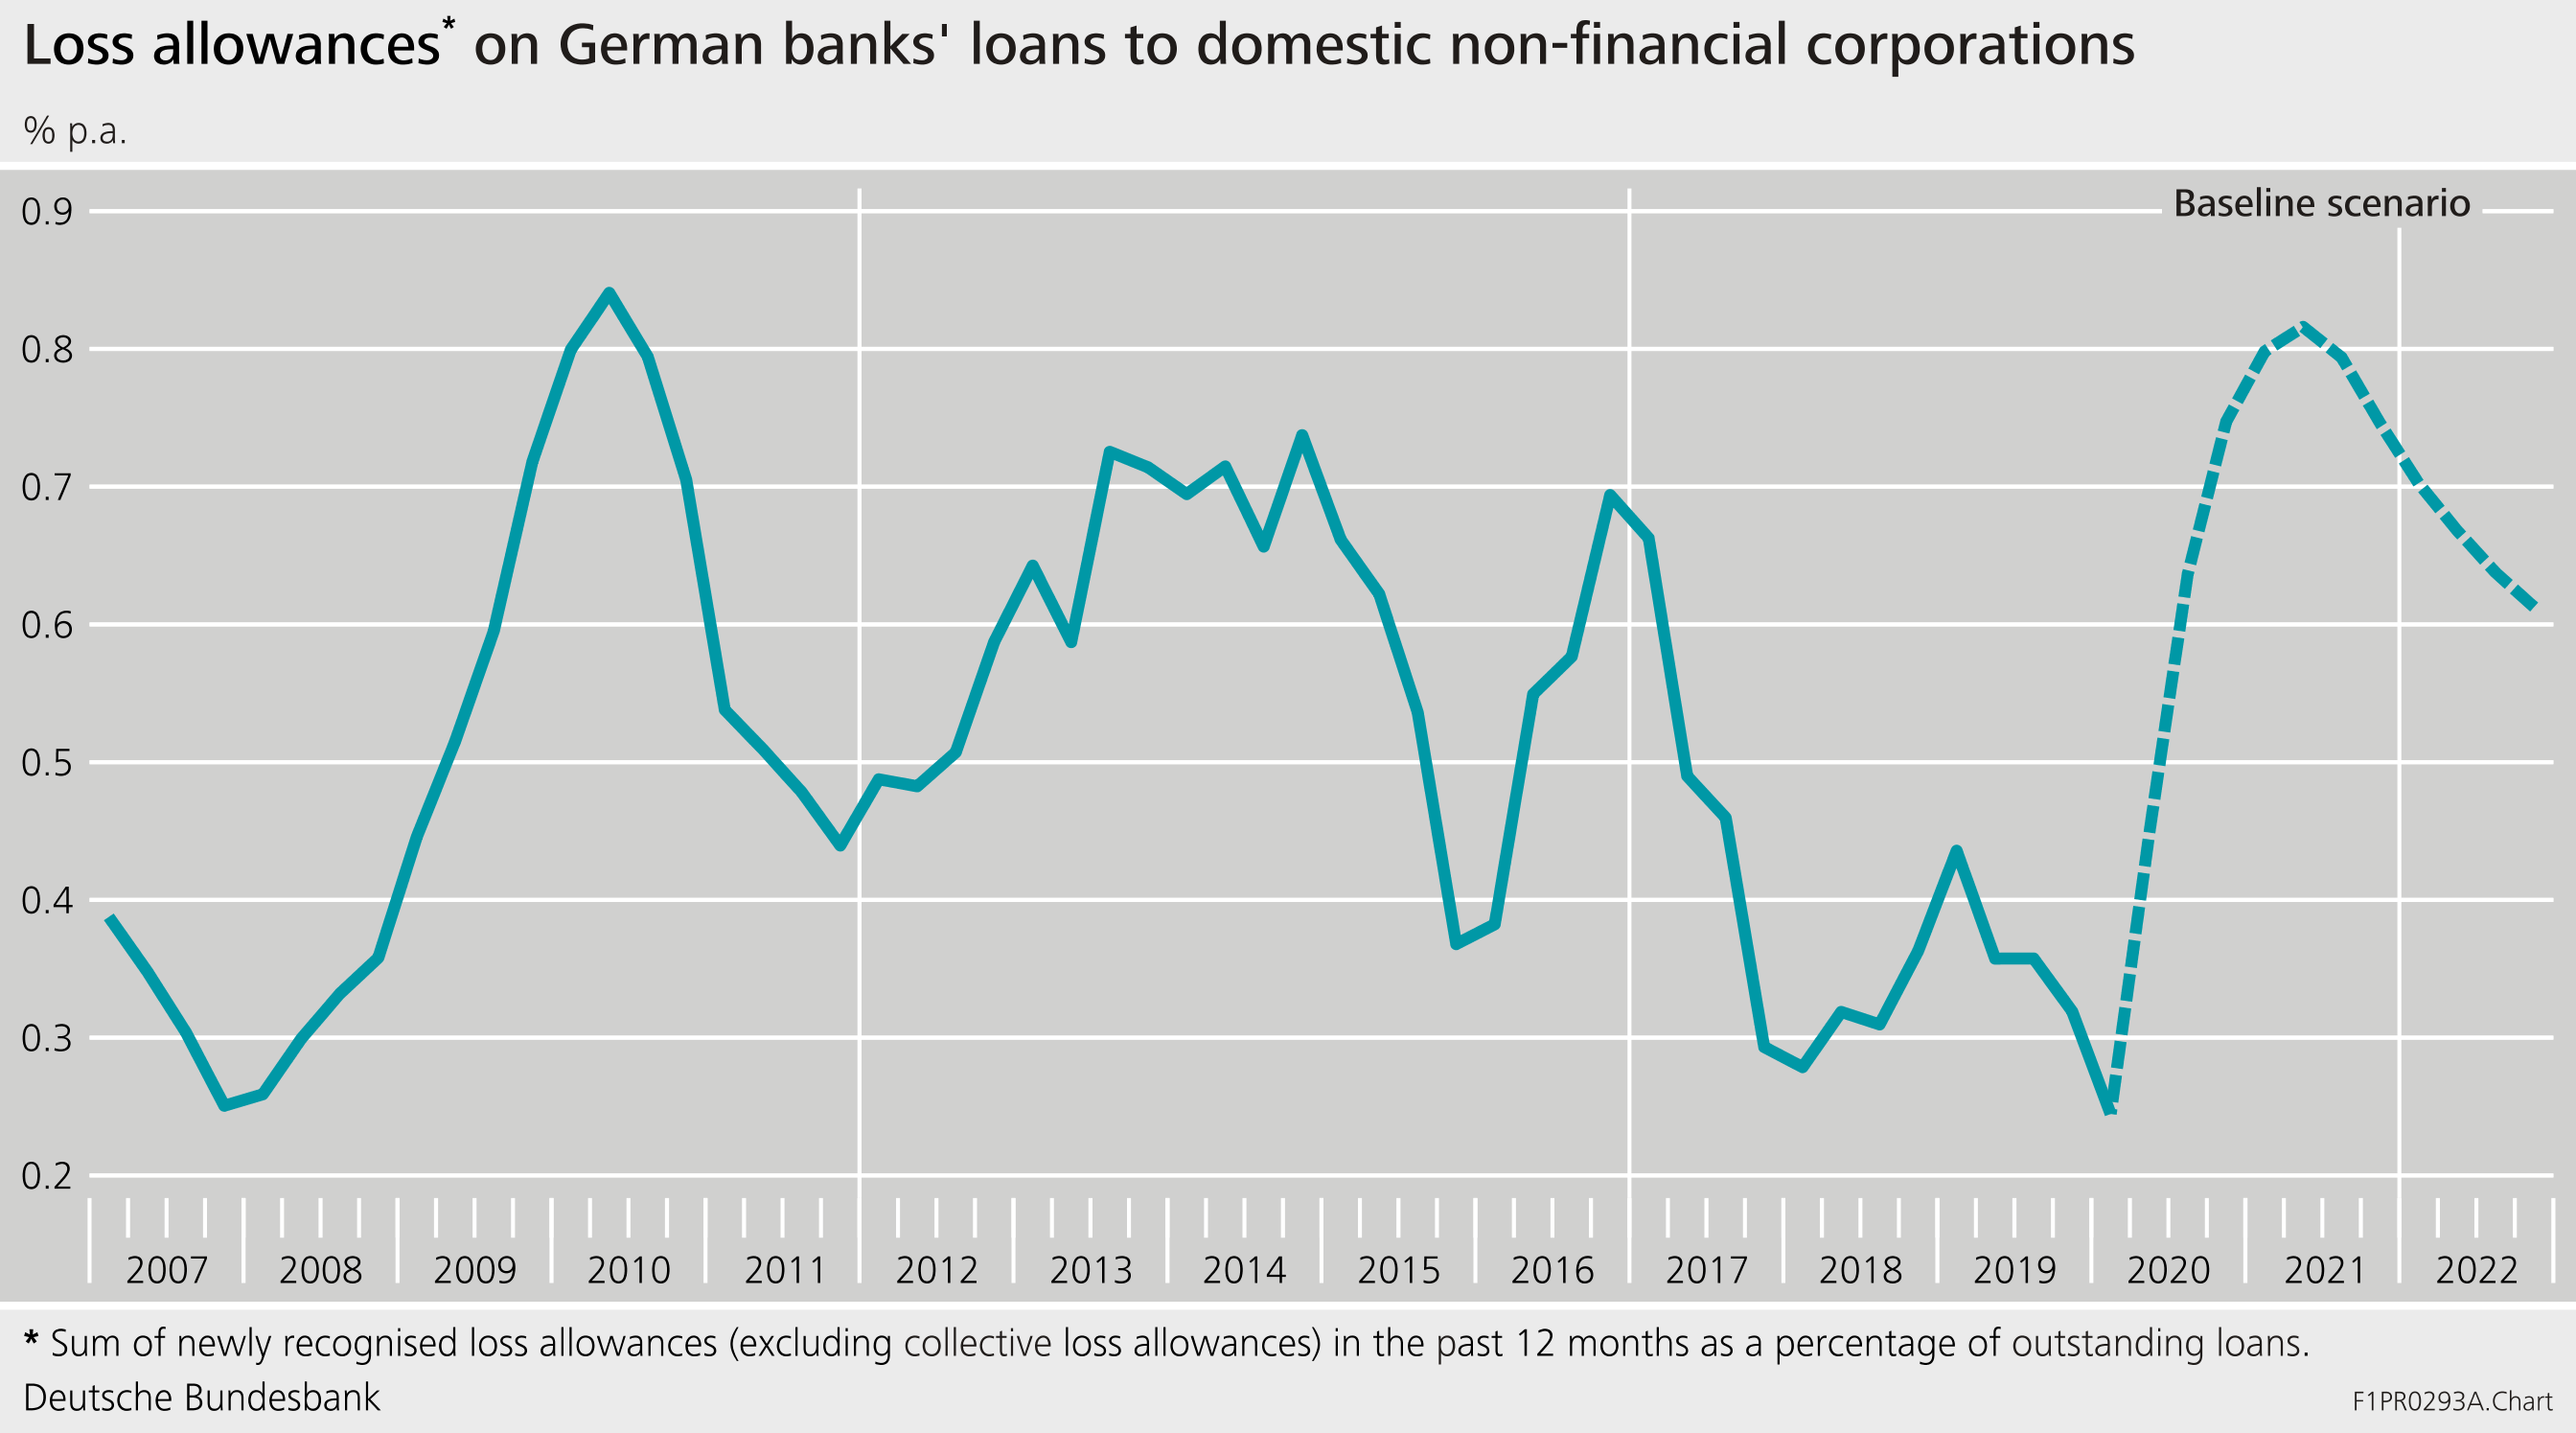 Simulation of loss allowances in the German banking sector